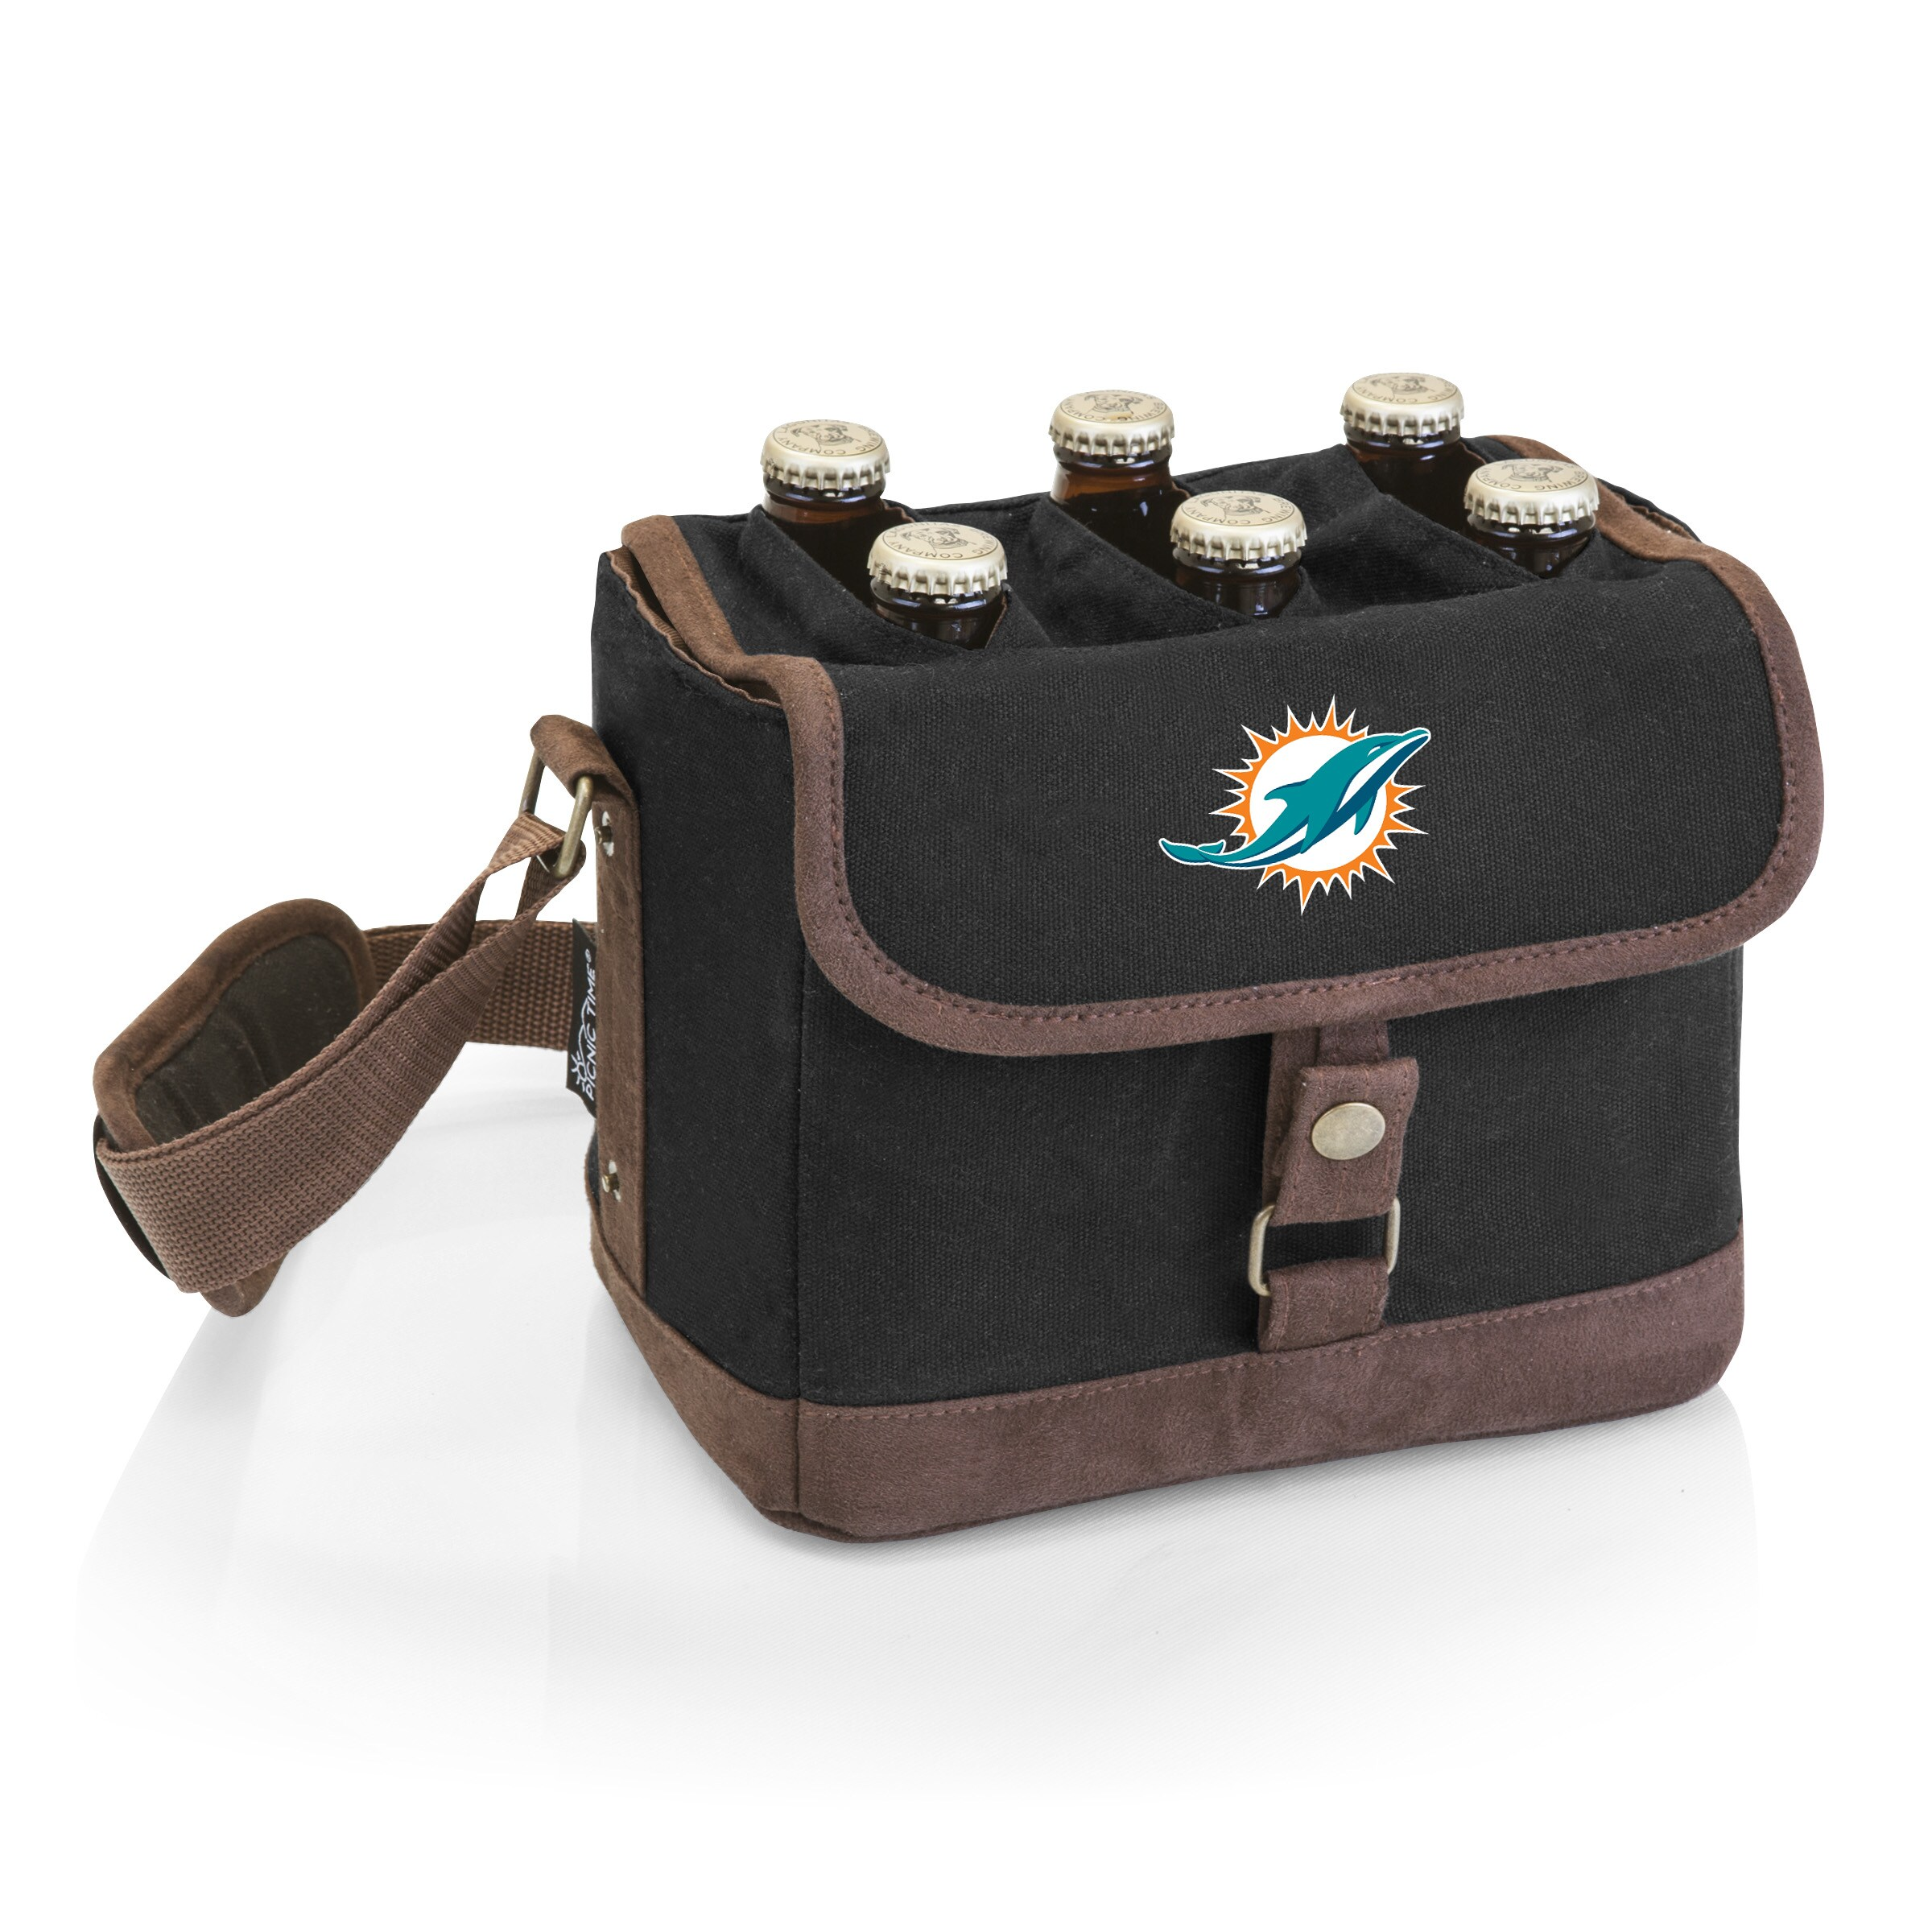 Miami Dolphins Beer Caddy Cooler Tote with Opener